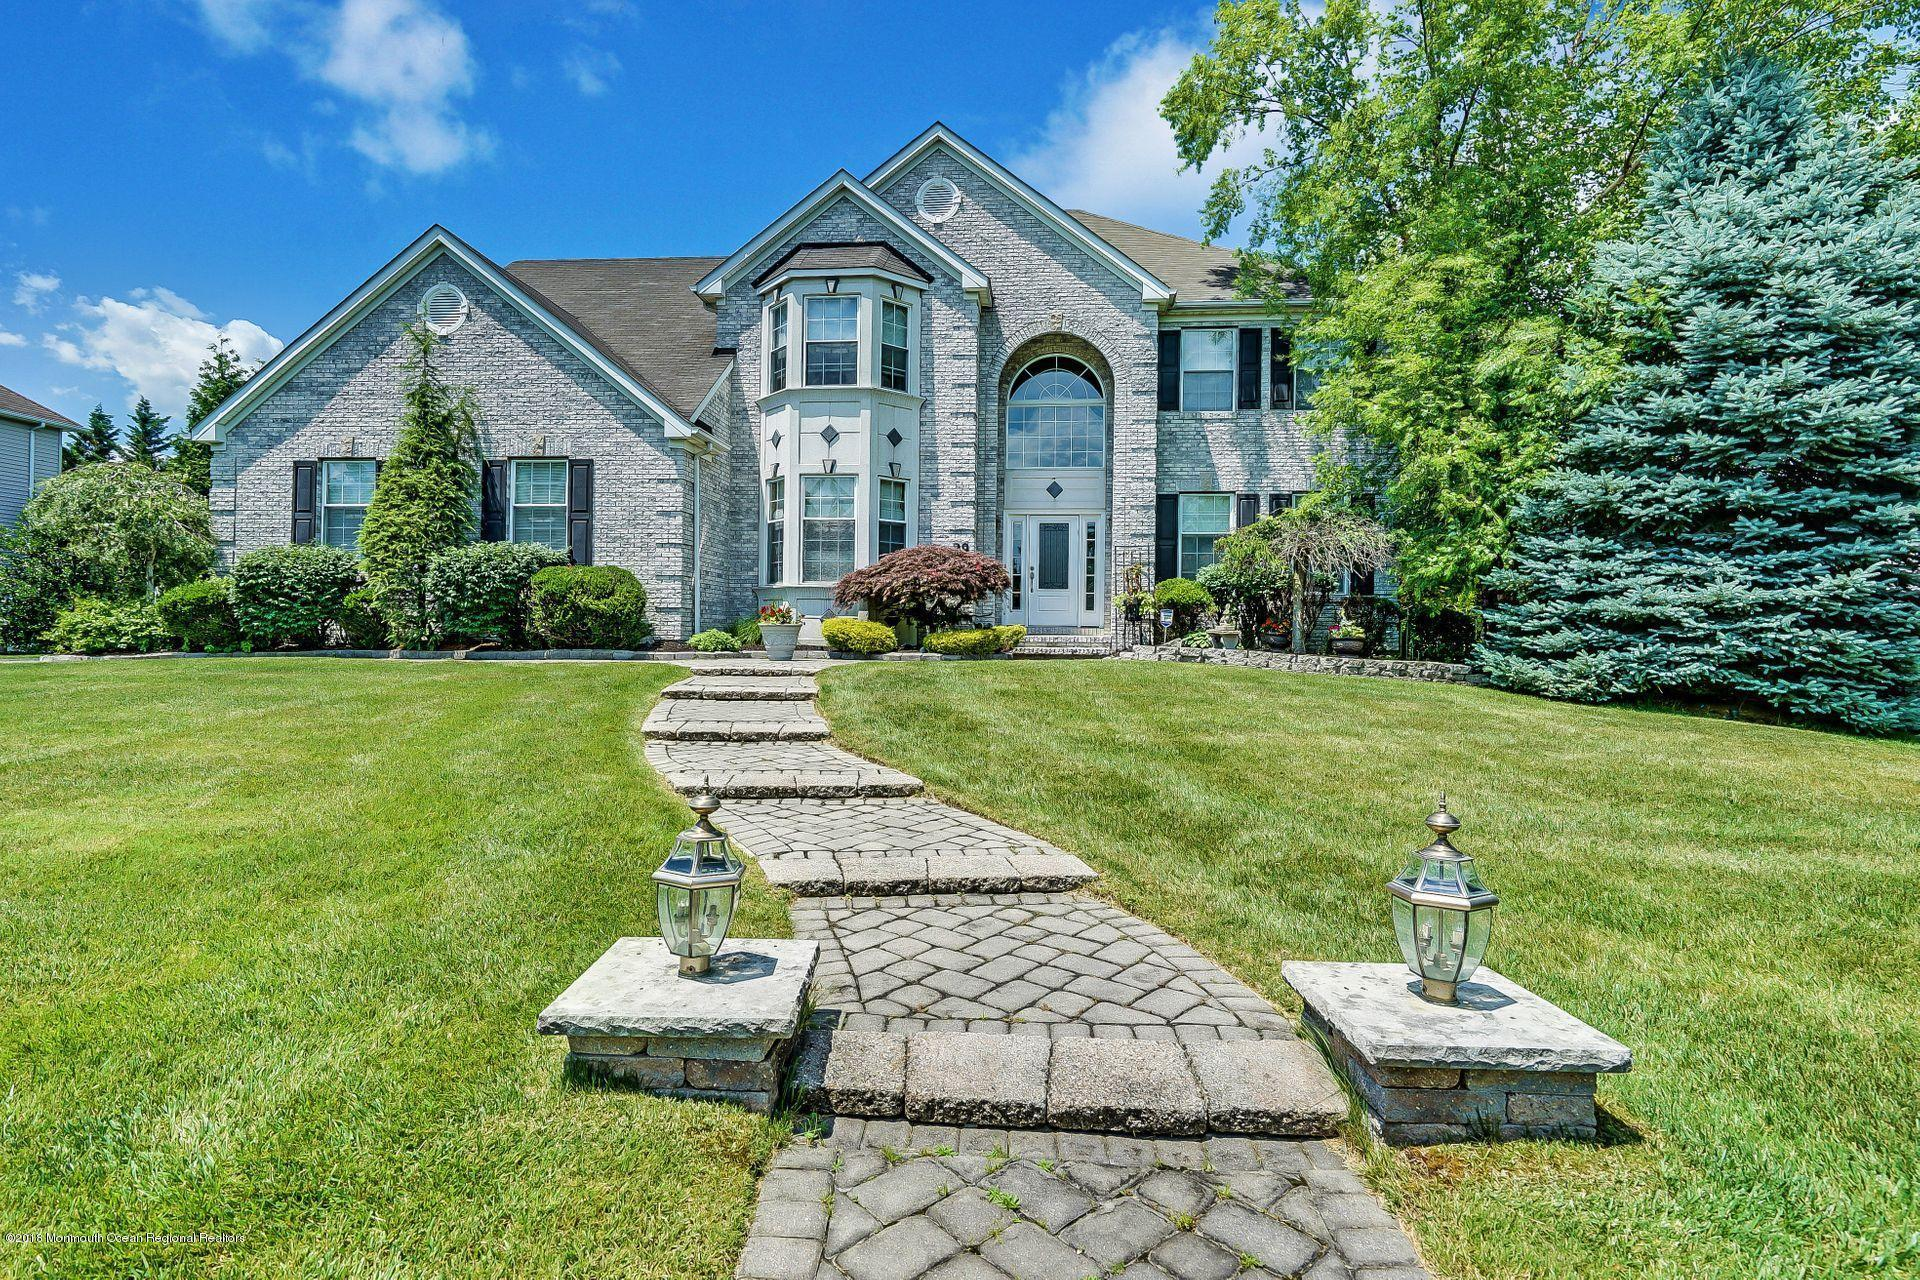 4 bed / 2 full, 1 partial baths Home in Ocean Twp for $759,900